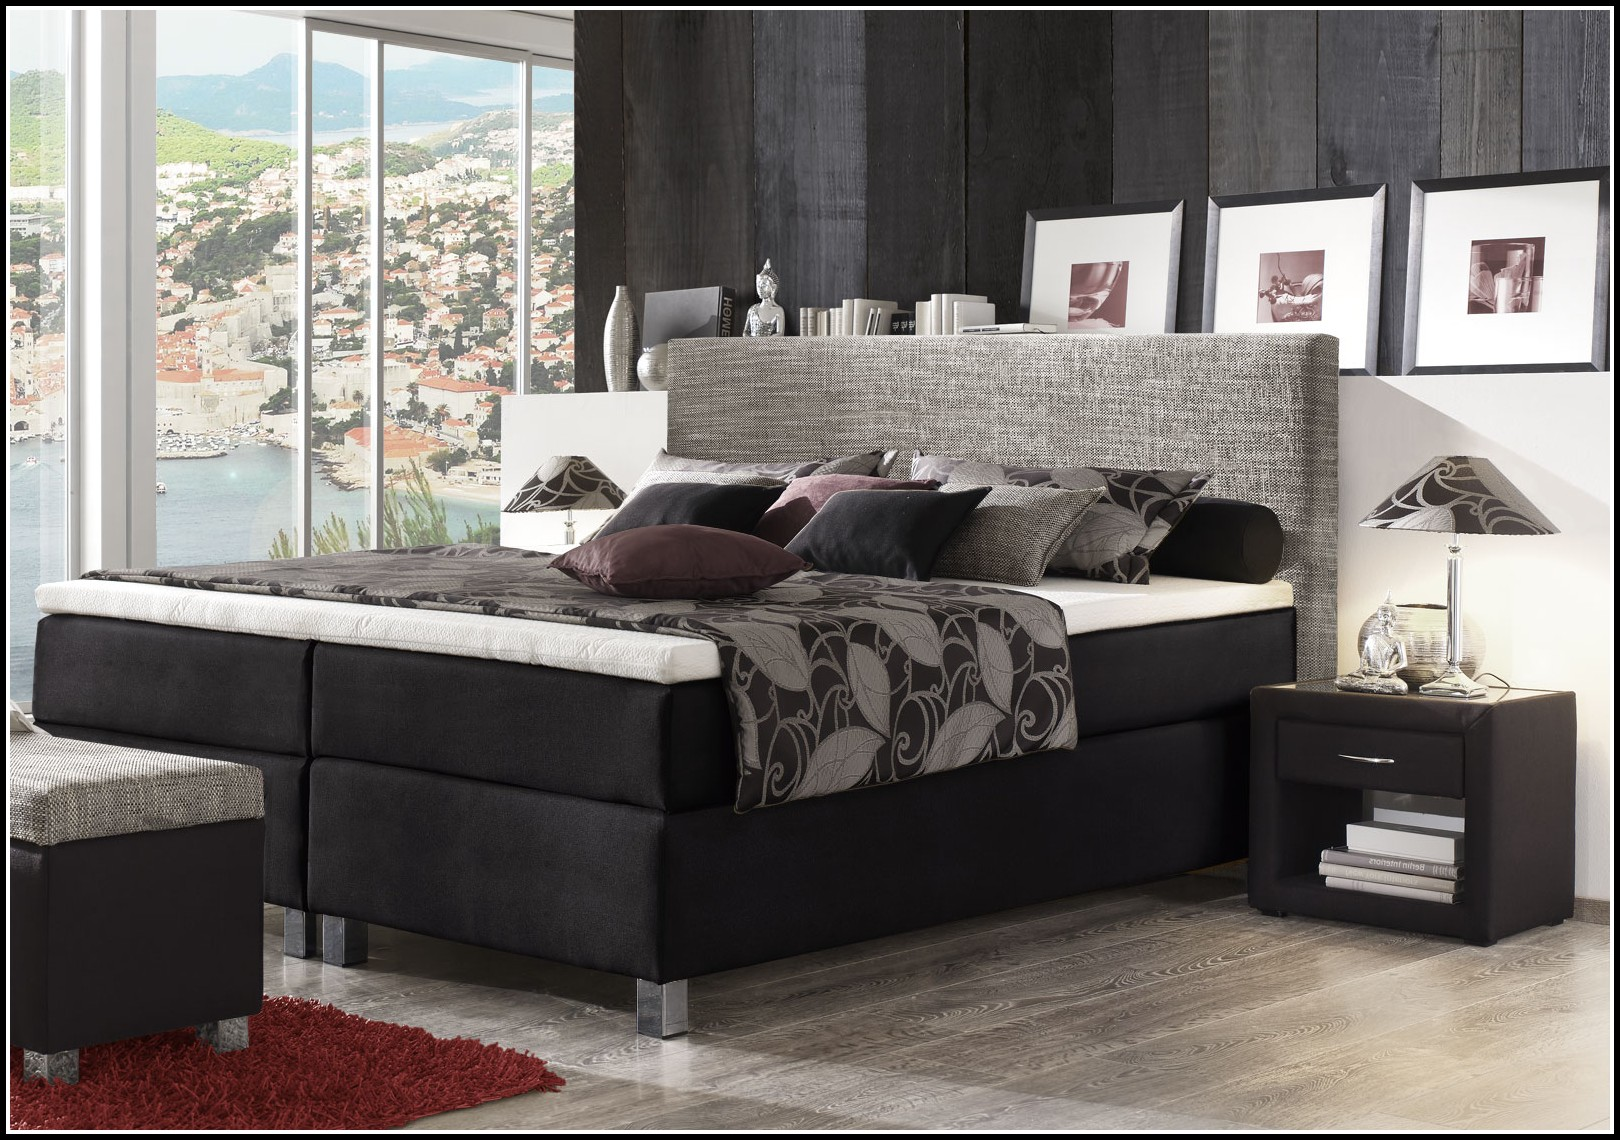 bett auf rechnung als neukunde download page beste wohnideen galerie. Black Bedroom Furniture Sets. Home Design Ideas